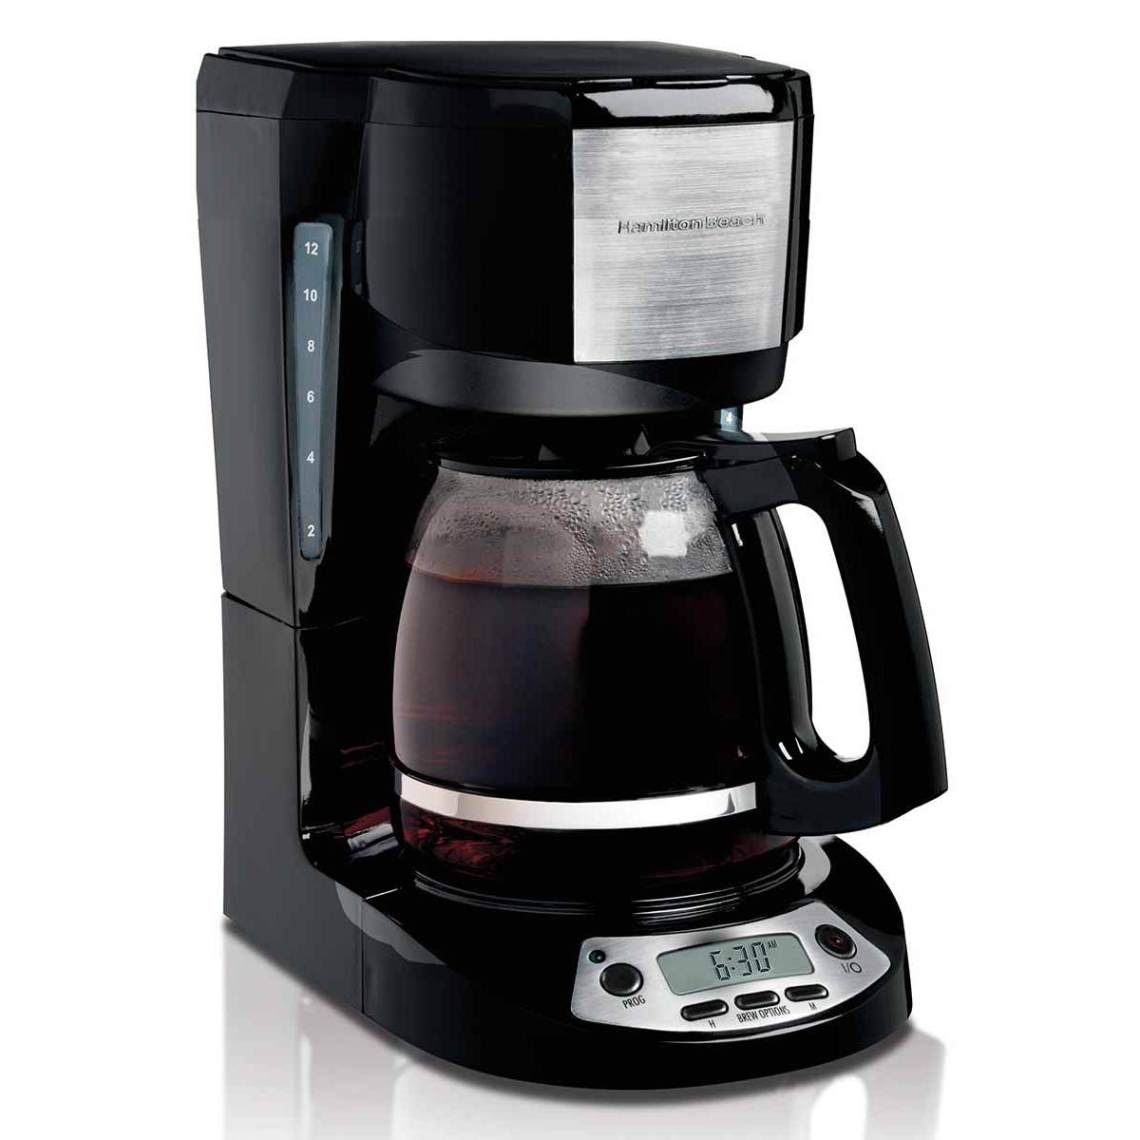 Image Result For Farberware Cup Programmable Coffee Maker Black